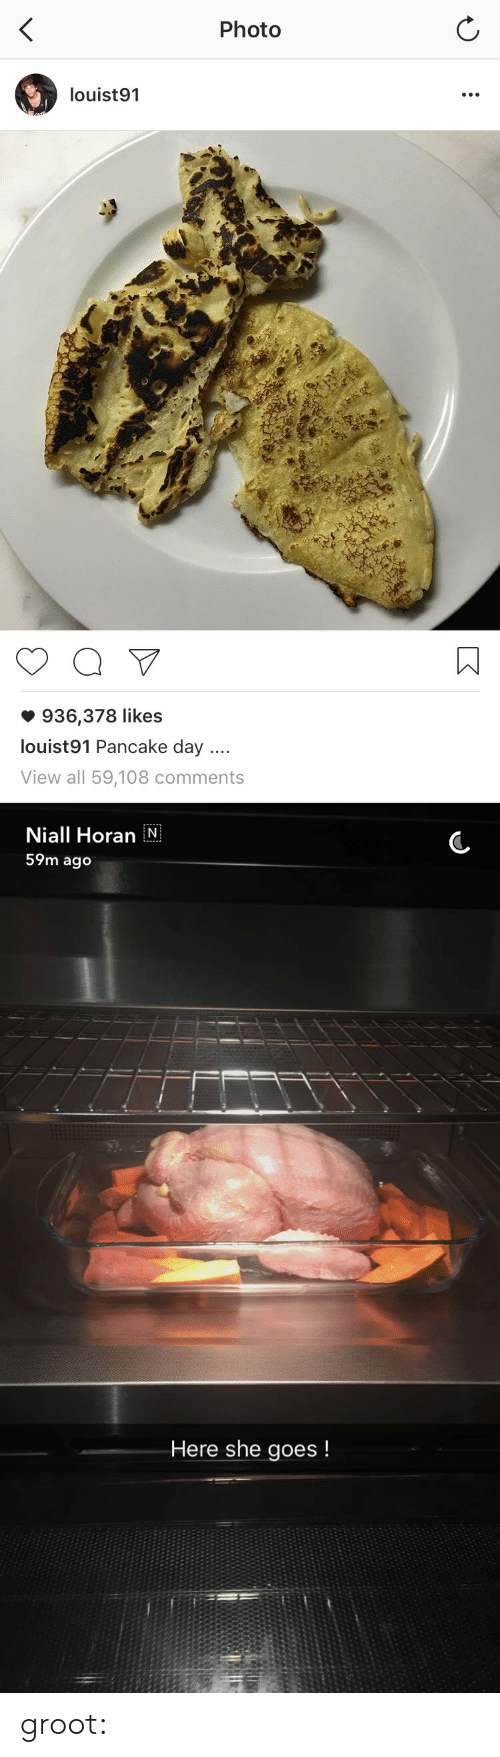 pancake day: Photo  louist91  936,378 likes  louist91 Pancake day  View all 59,108 comments   Niall Horan N  59m ago  Here she goes! groot: